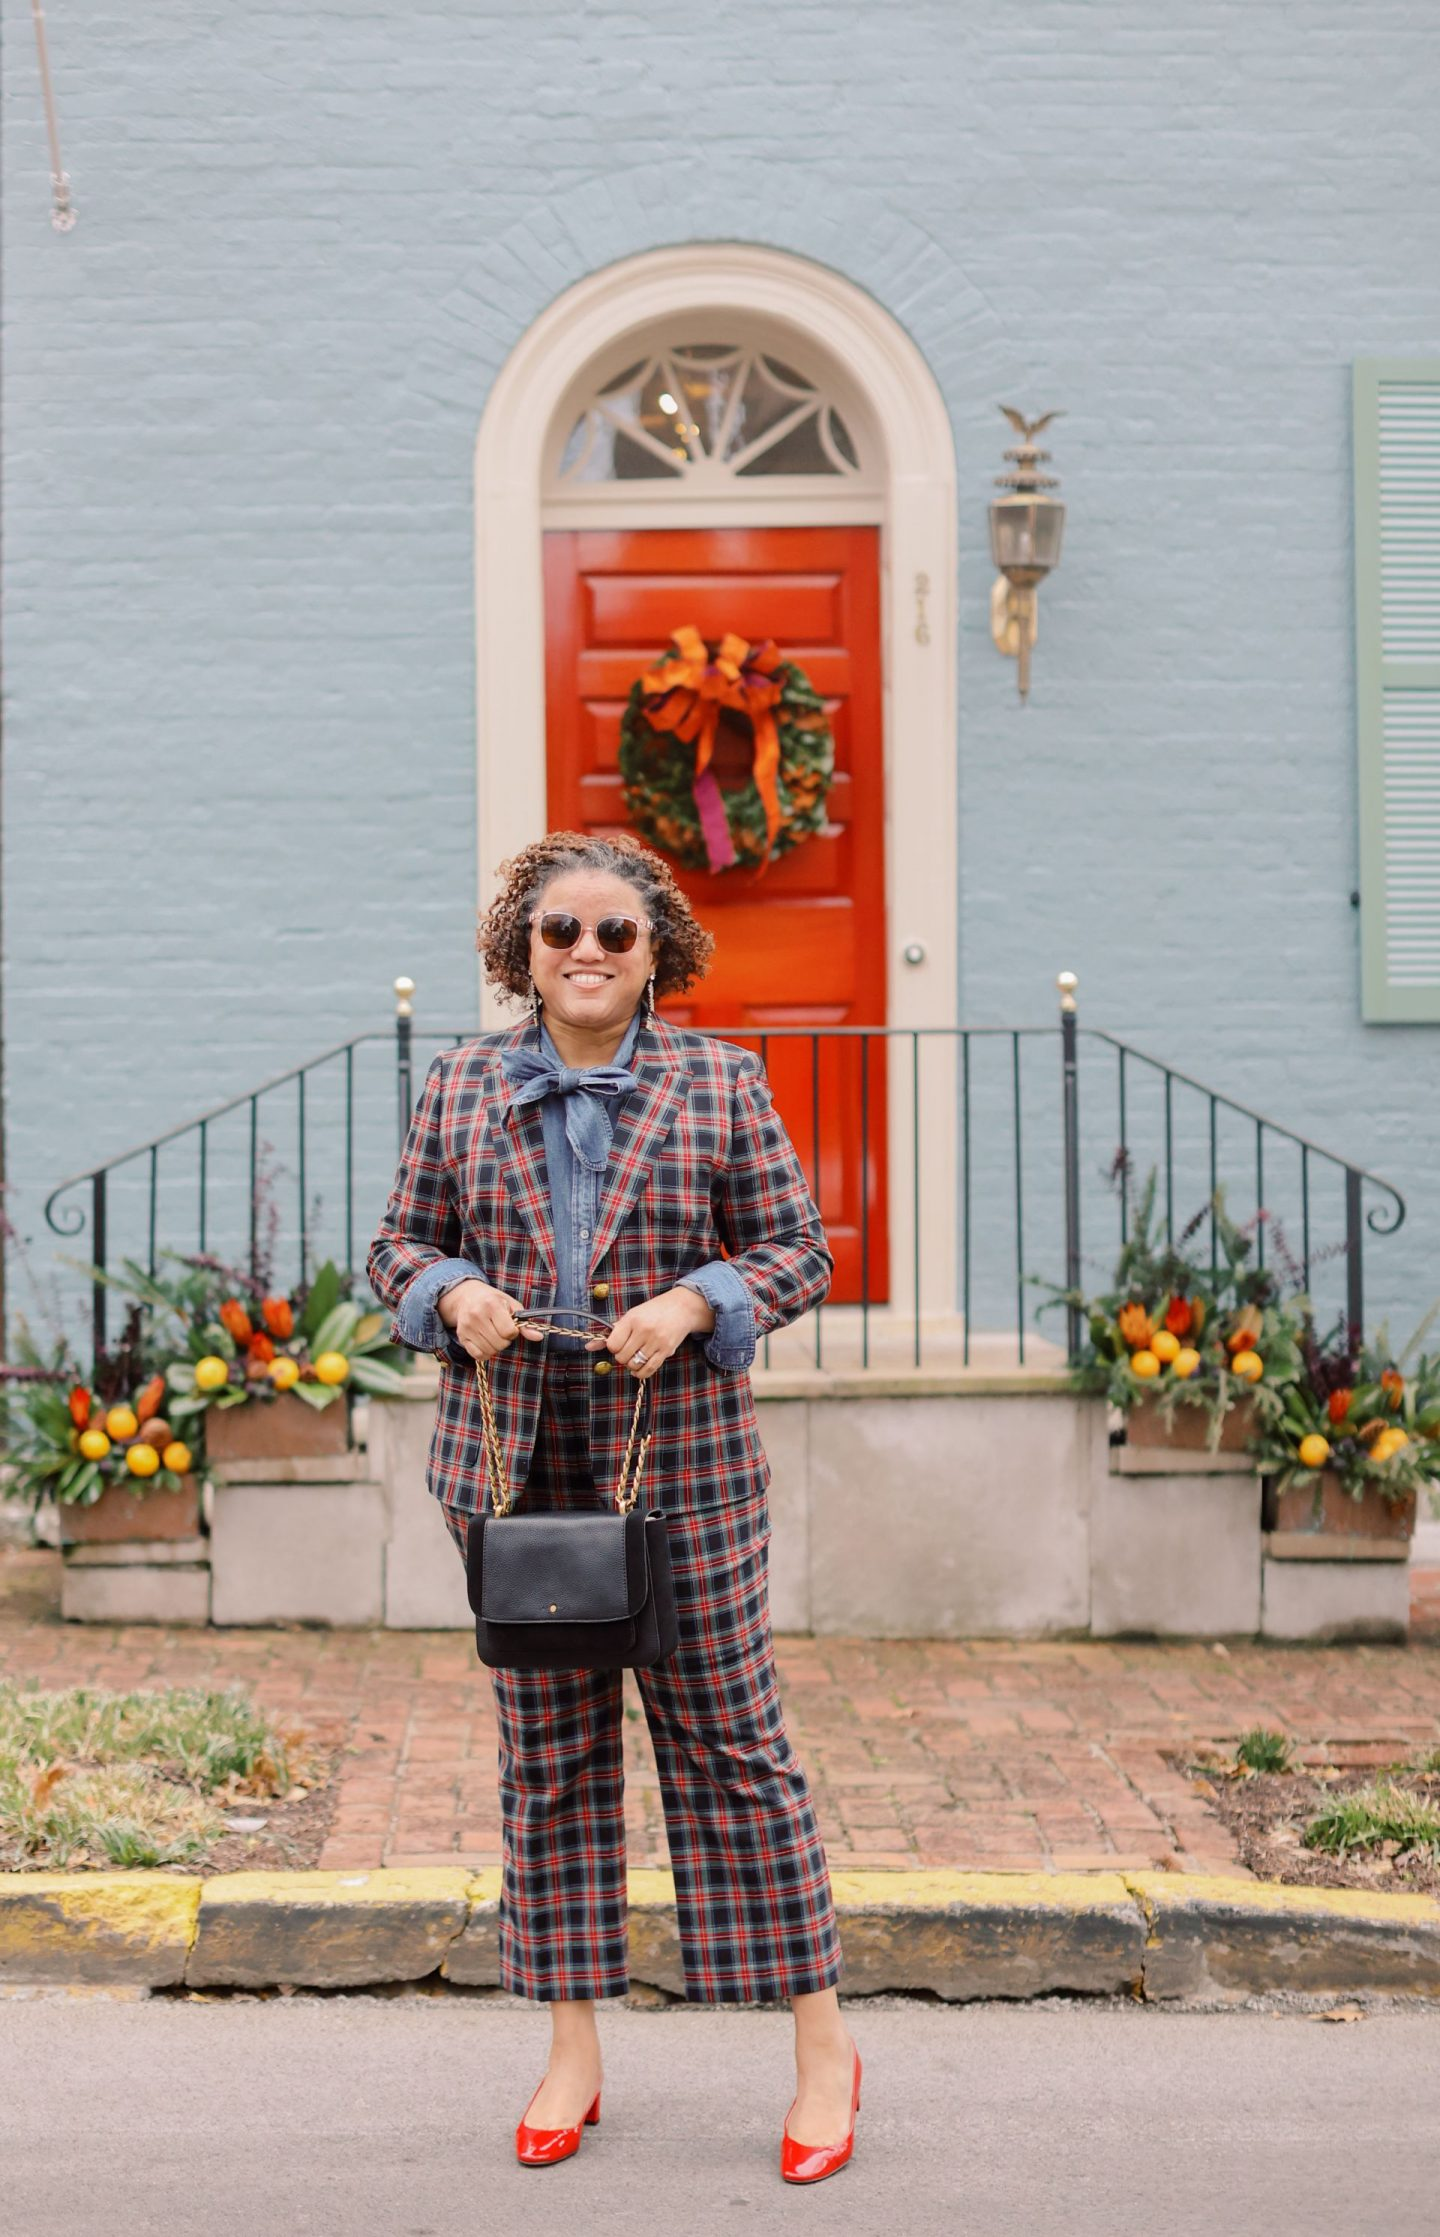 Holiday Outfits by popular Kentucky fashion blog, Really Rynetta: image of a woman standing outside and wearing a tartan plaid suit with a denim shirt and red slingback pumps.